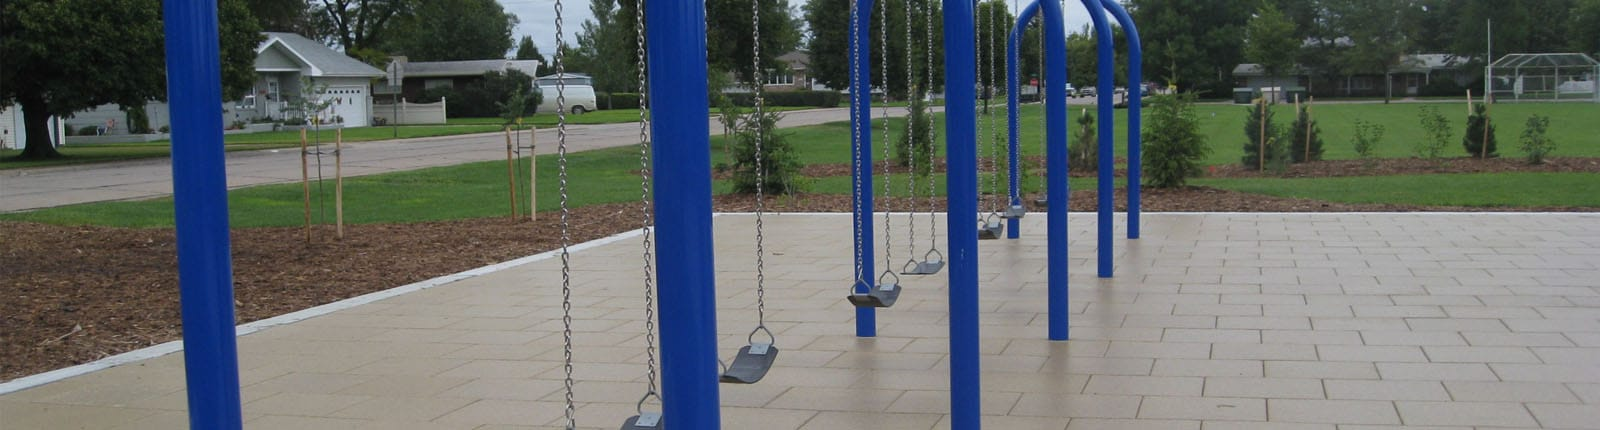 Modular Play Swing Set | Sterling West